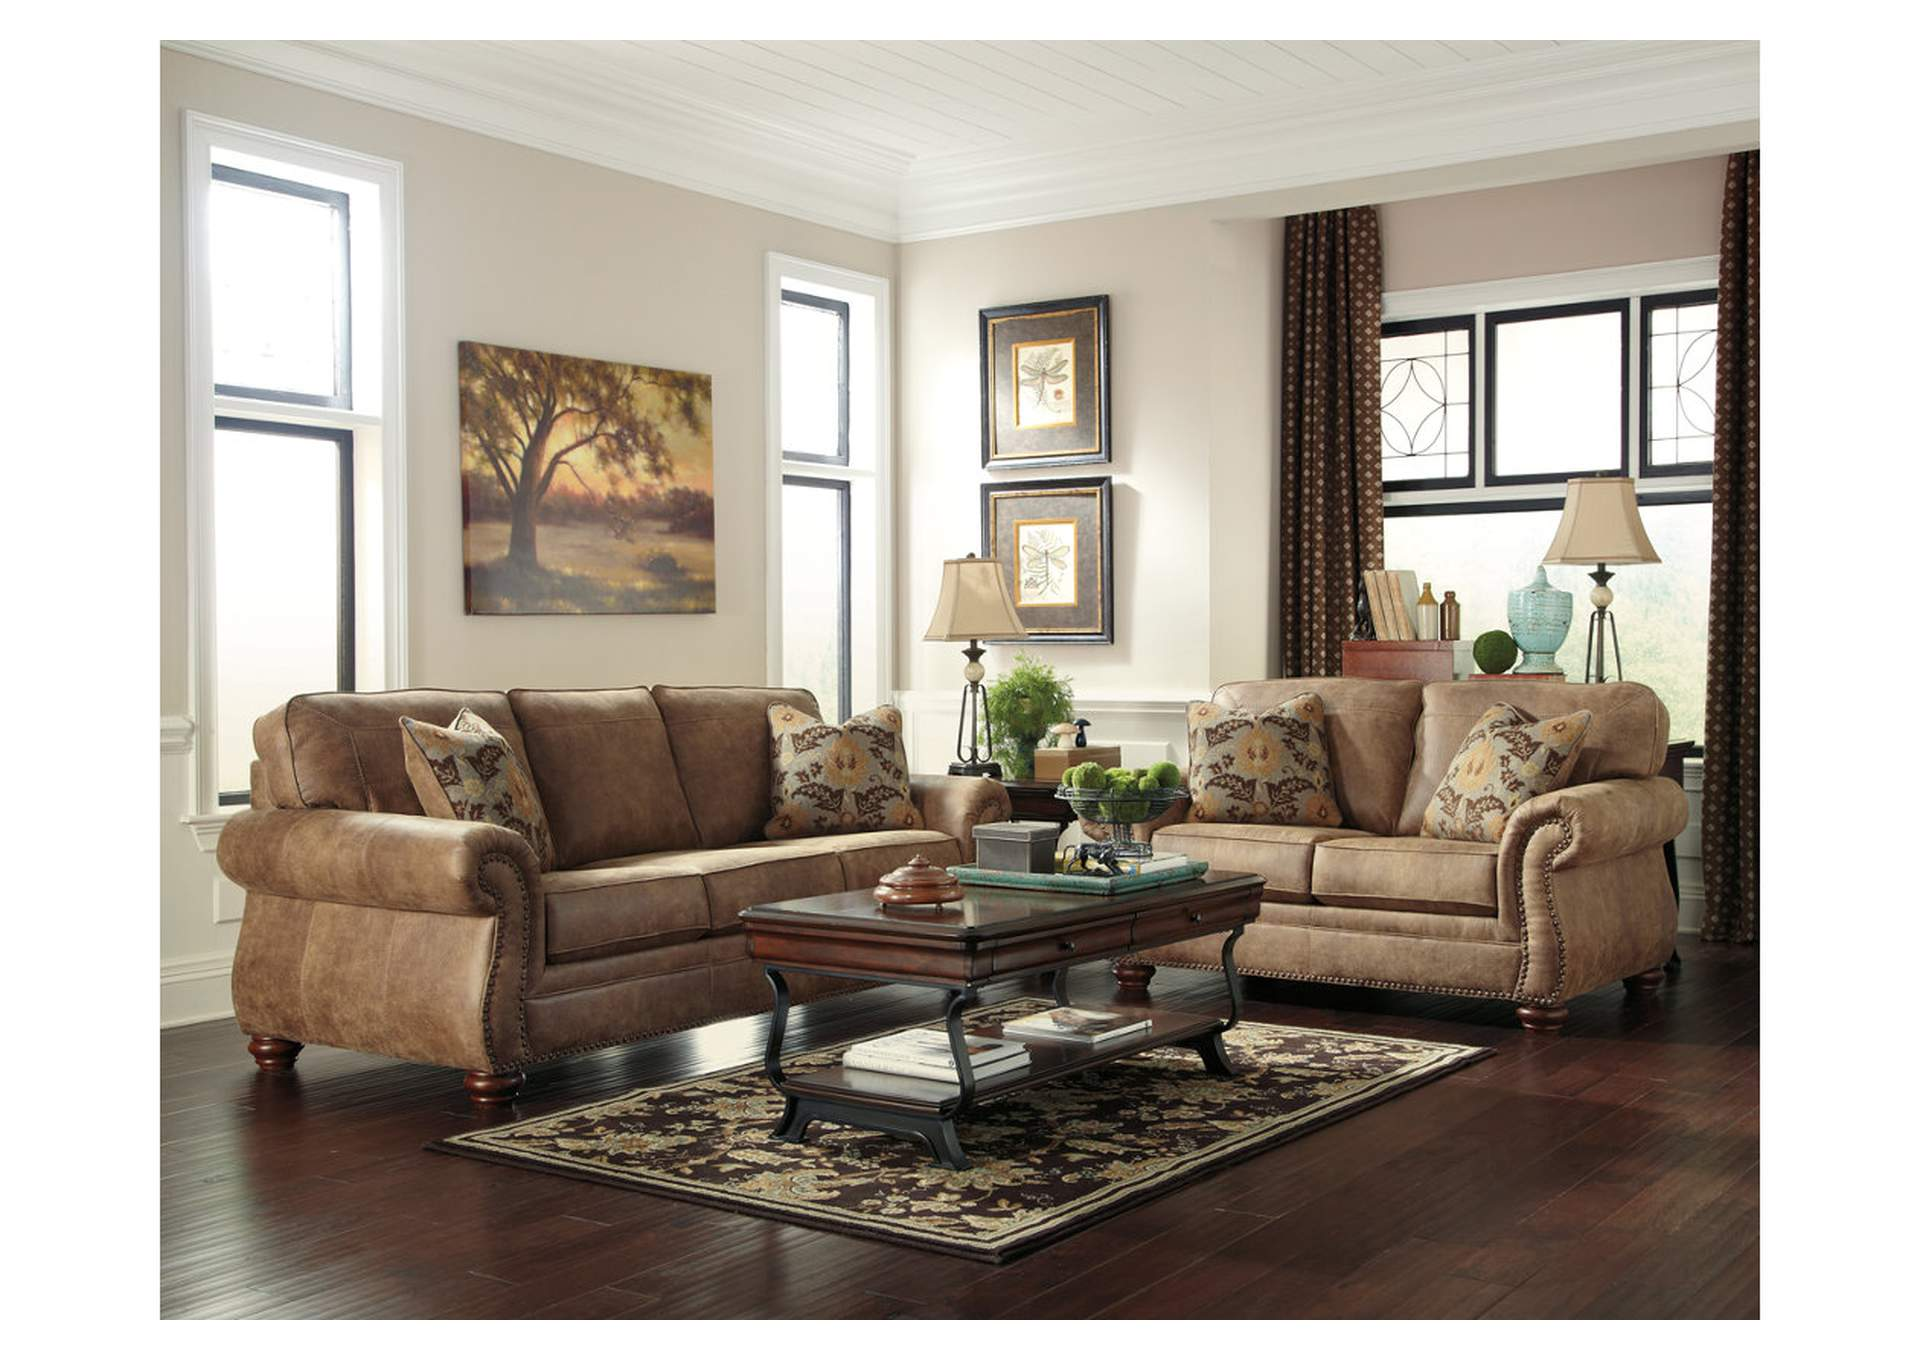 Sweet Affordable Living Room Sets. Larkinhurst Earth Sofa  Loveseat Signature Design By Ashley Sweet Dreams Bedding Furniture